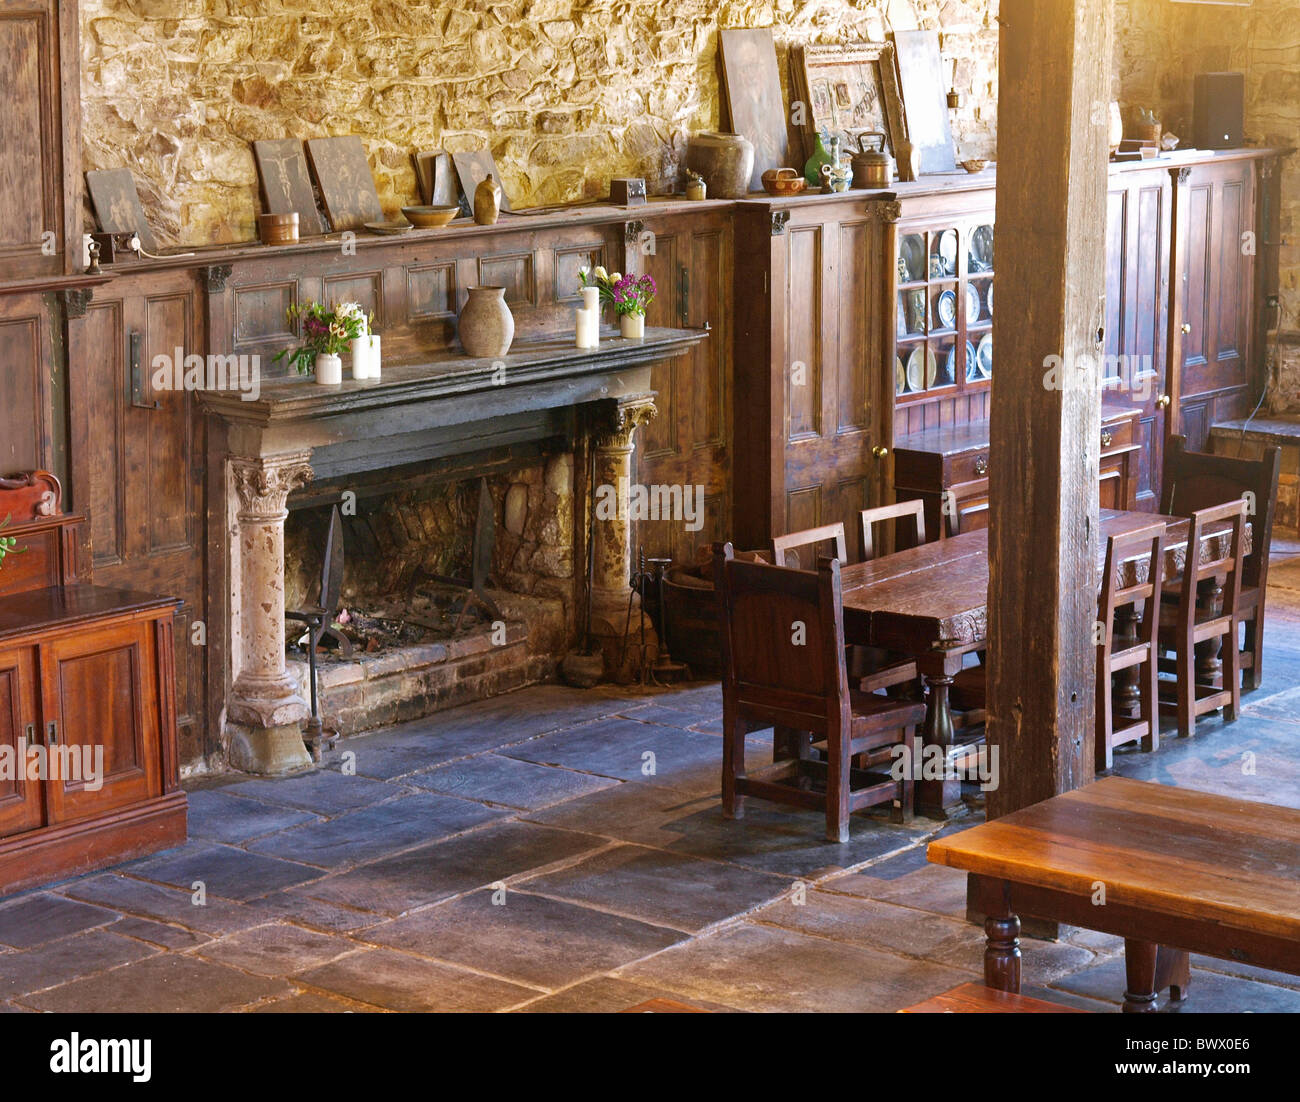 FIRE PLACE IN THE GREAT HALL AT MONTSALVAT , ARTIST COMMUNITY  VICTORIA AUSTRALIA - Stock Image